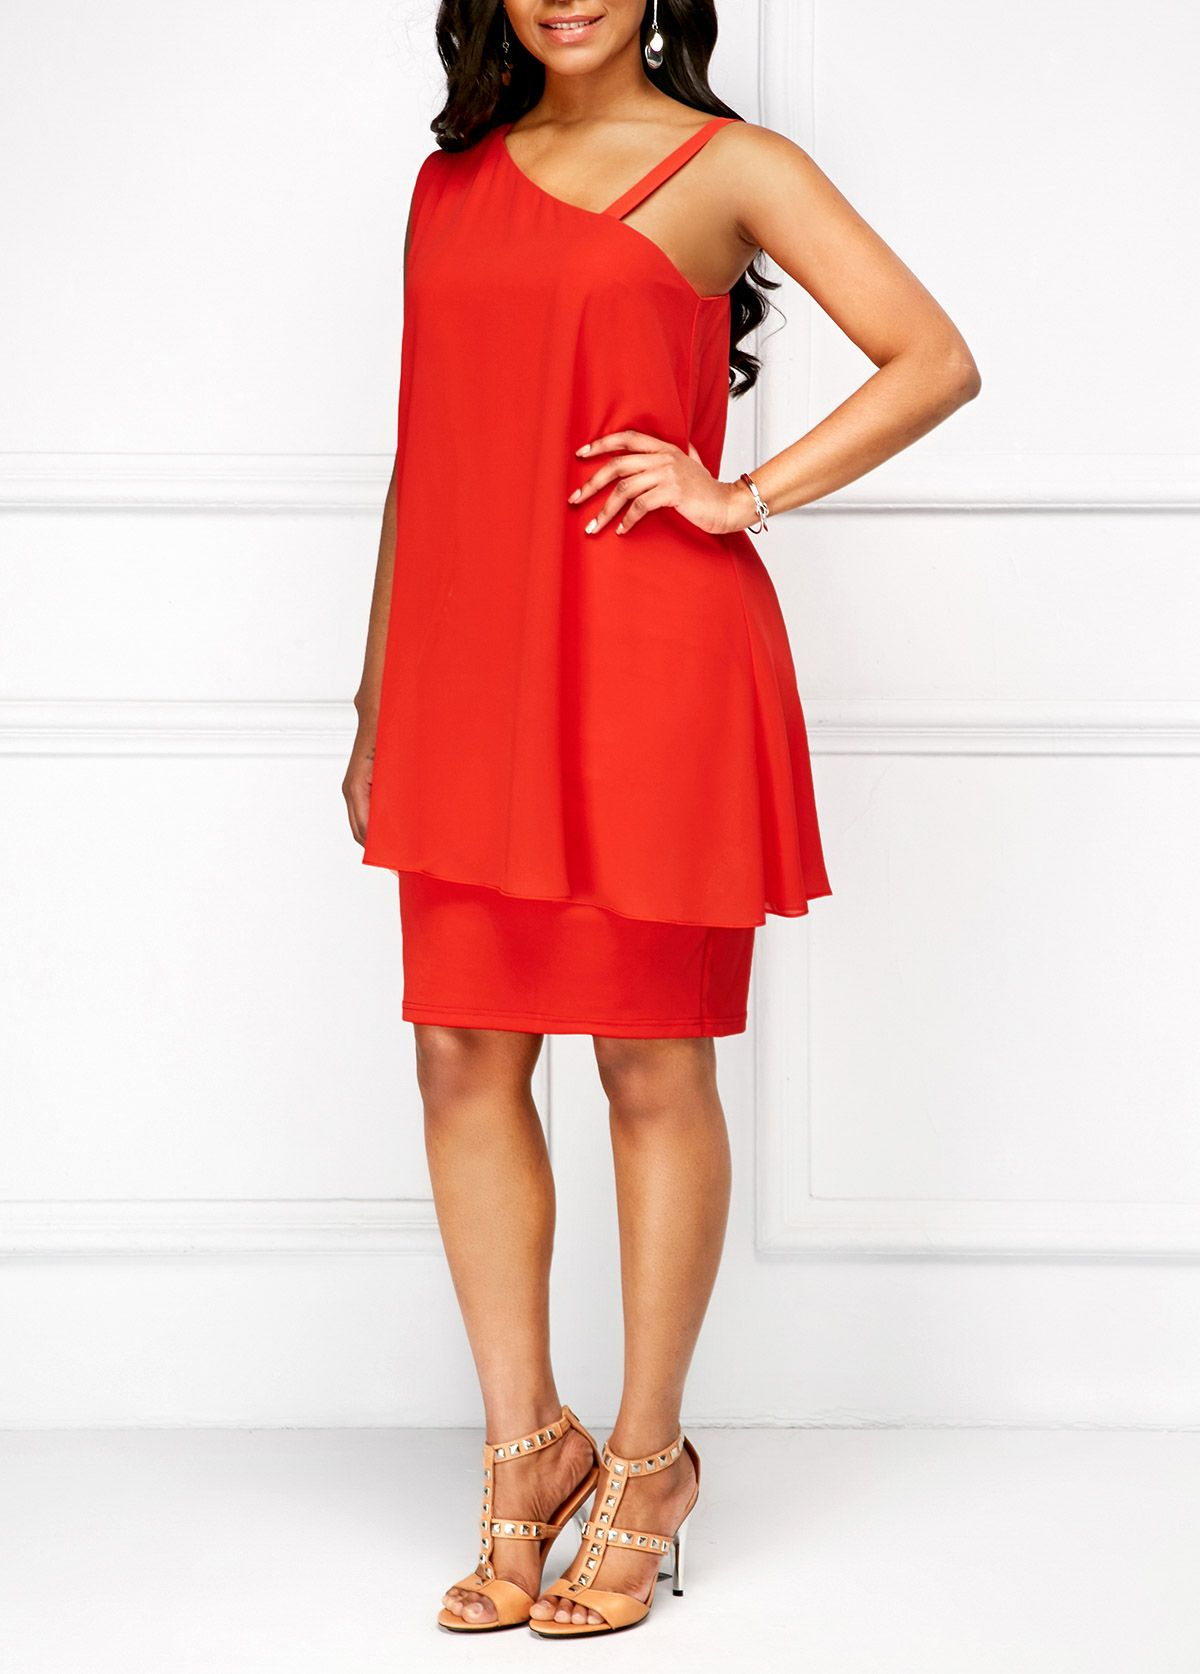 050ab1db0fe Orange Red Spaghetti Strap Sleeveless Overlay Dress